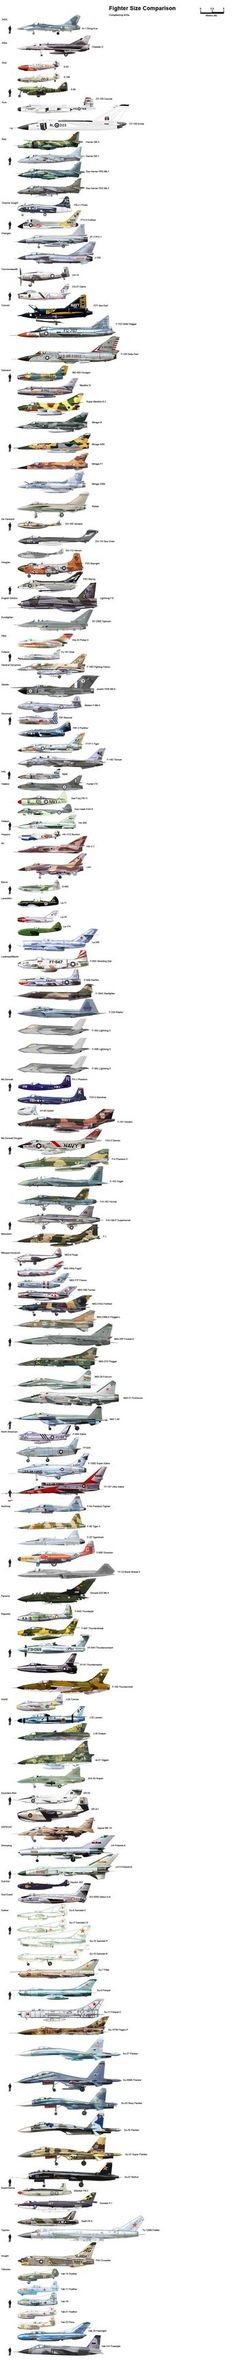 Fighter Jet Comparison – what is the world's biggest fighter jet? » MiGFlug.com Blog